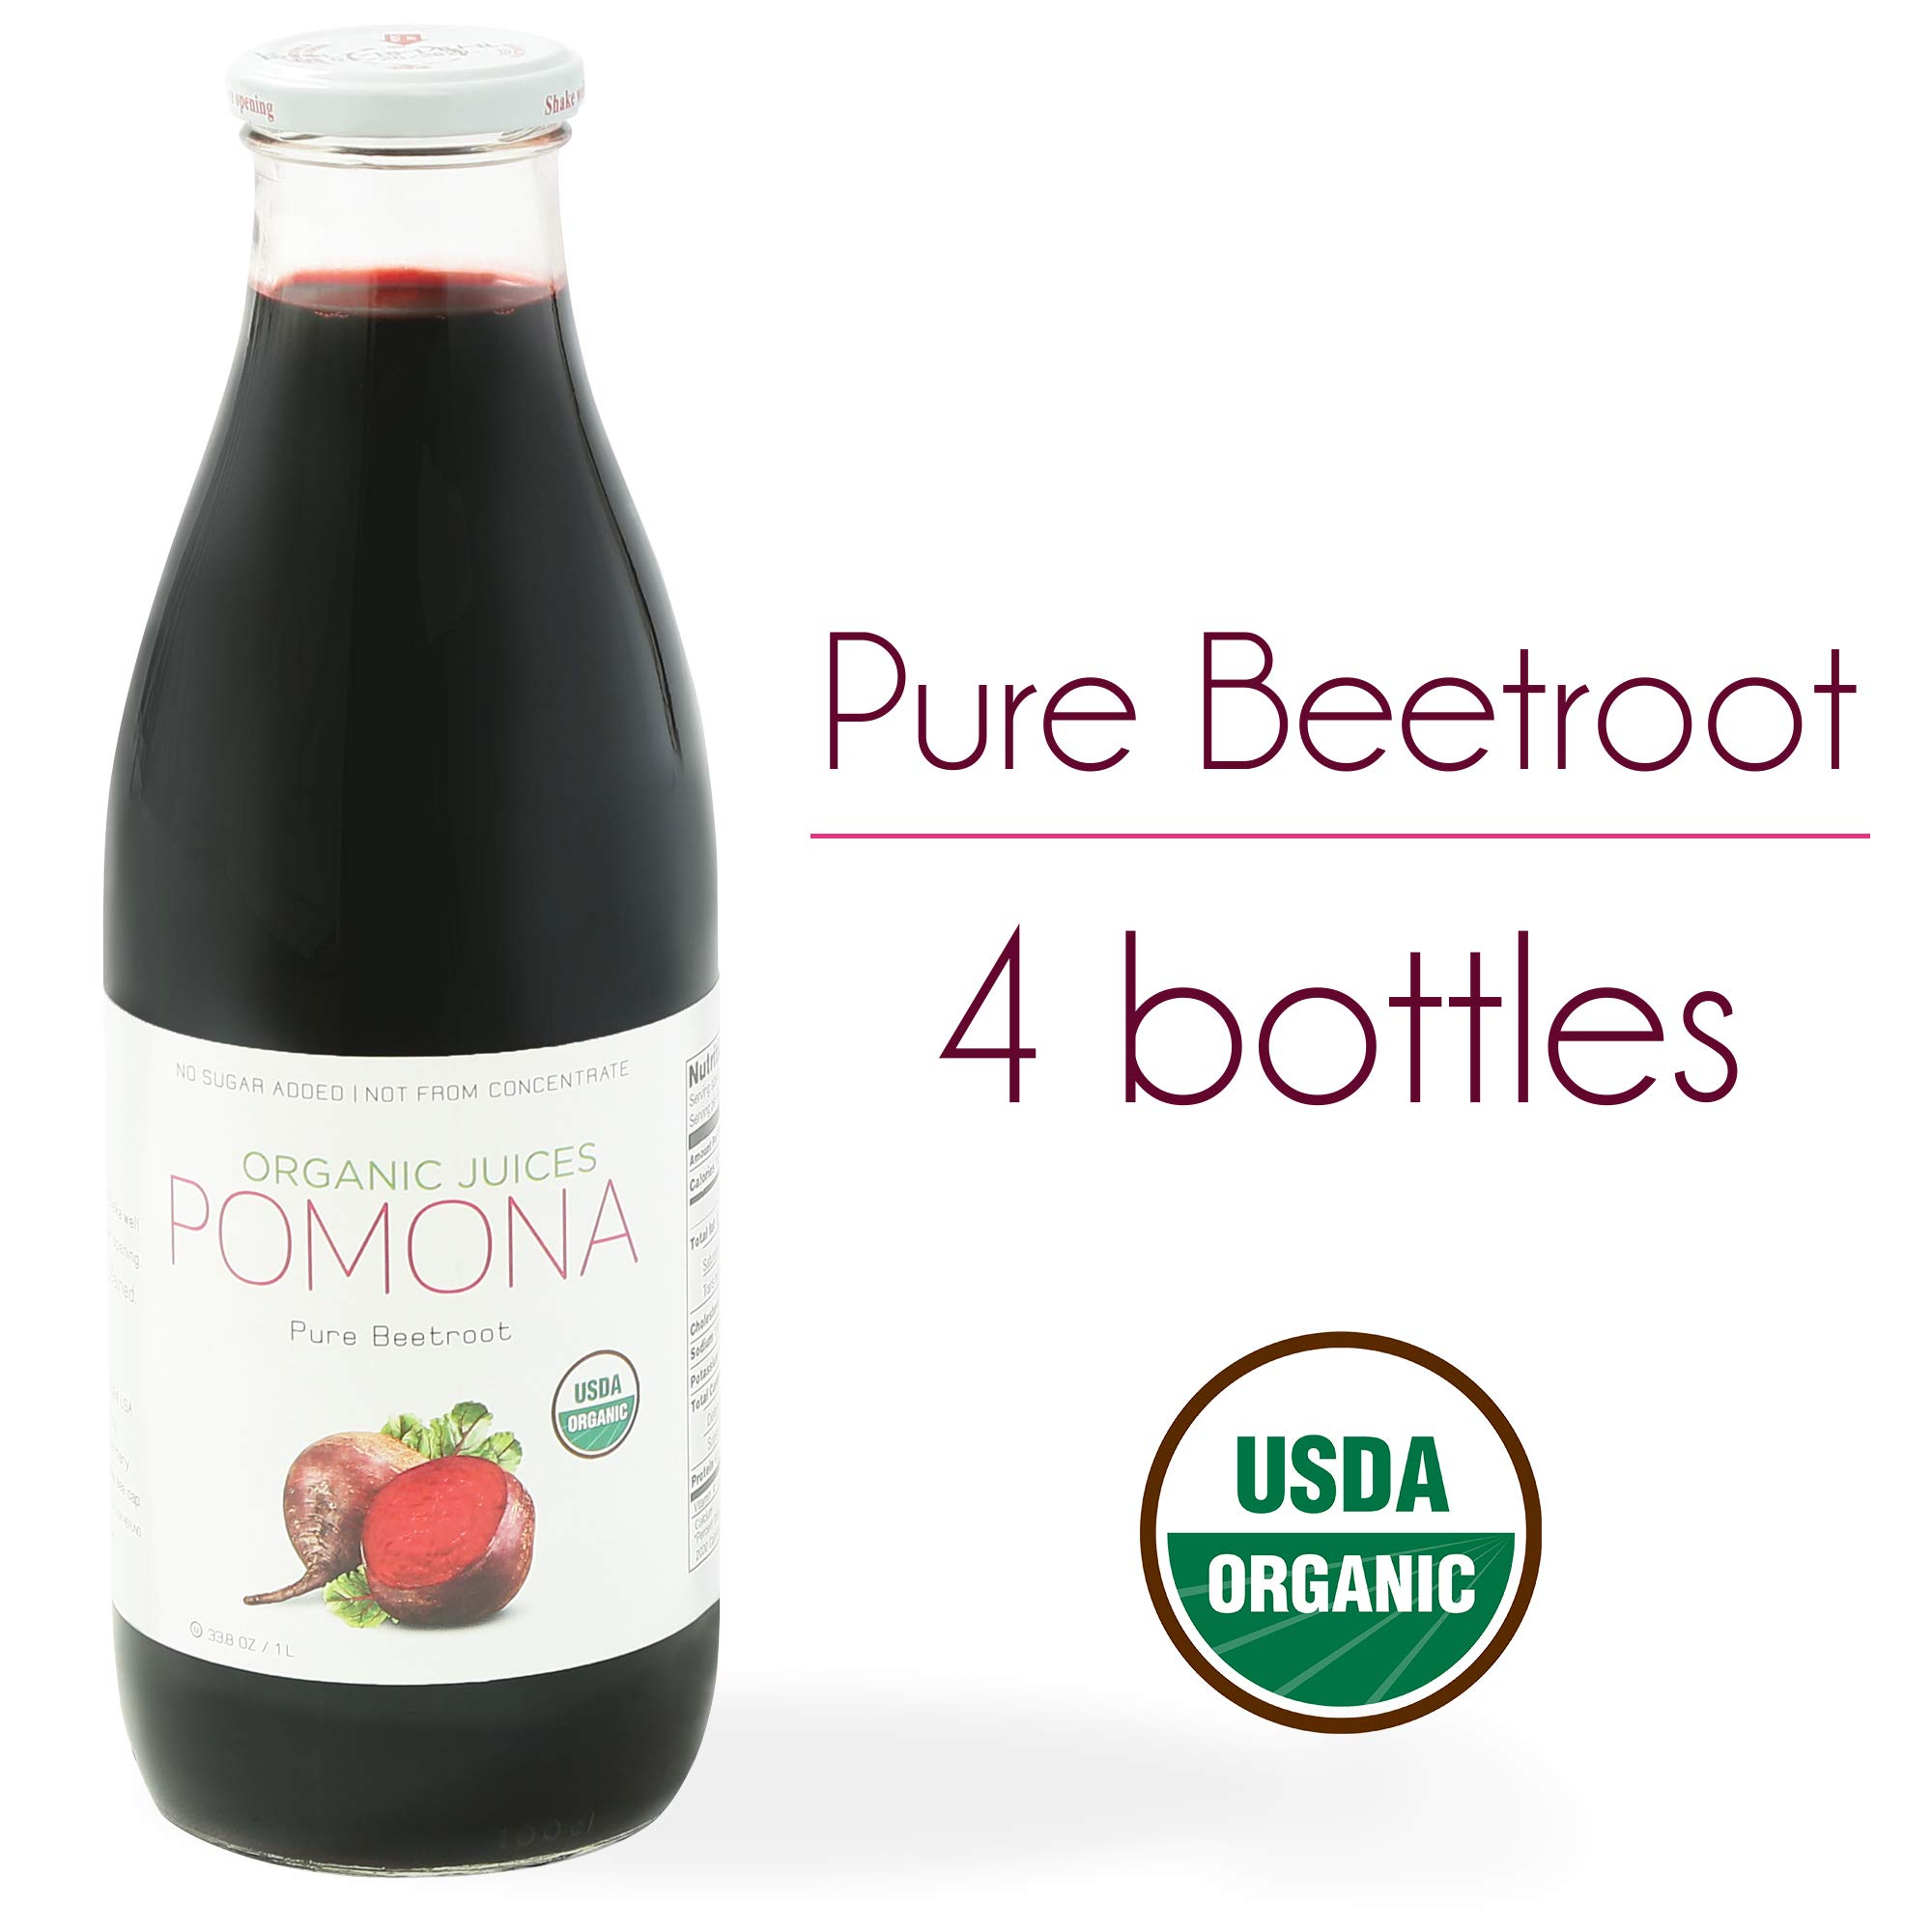 POMONA Organic Pure Beet Juice, 1 Liter Bottle (Pack of 4), Cold Pressed Organic Juice, Non-GMO, No Sugar Added, Not from Concentrate, Gluten Free, Kosher Certified, Preservative Free